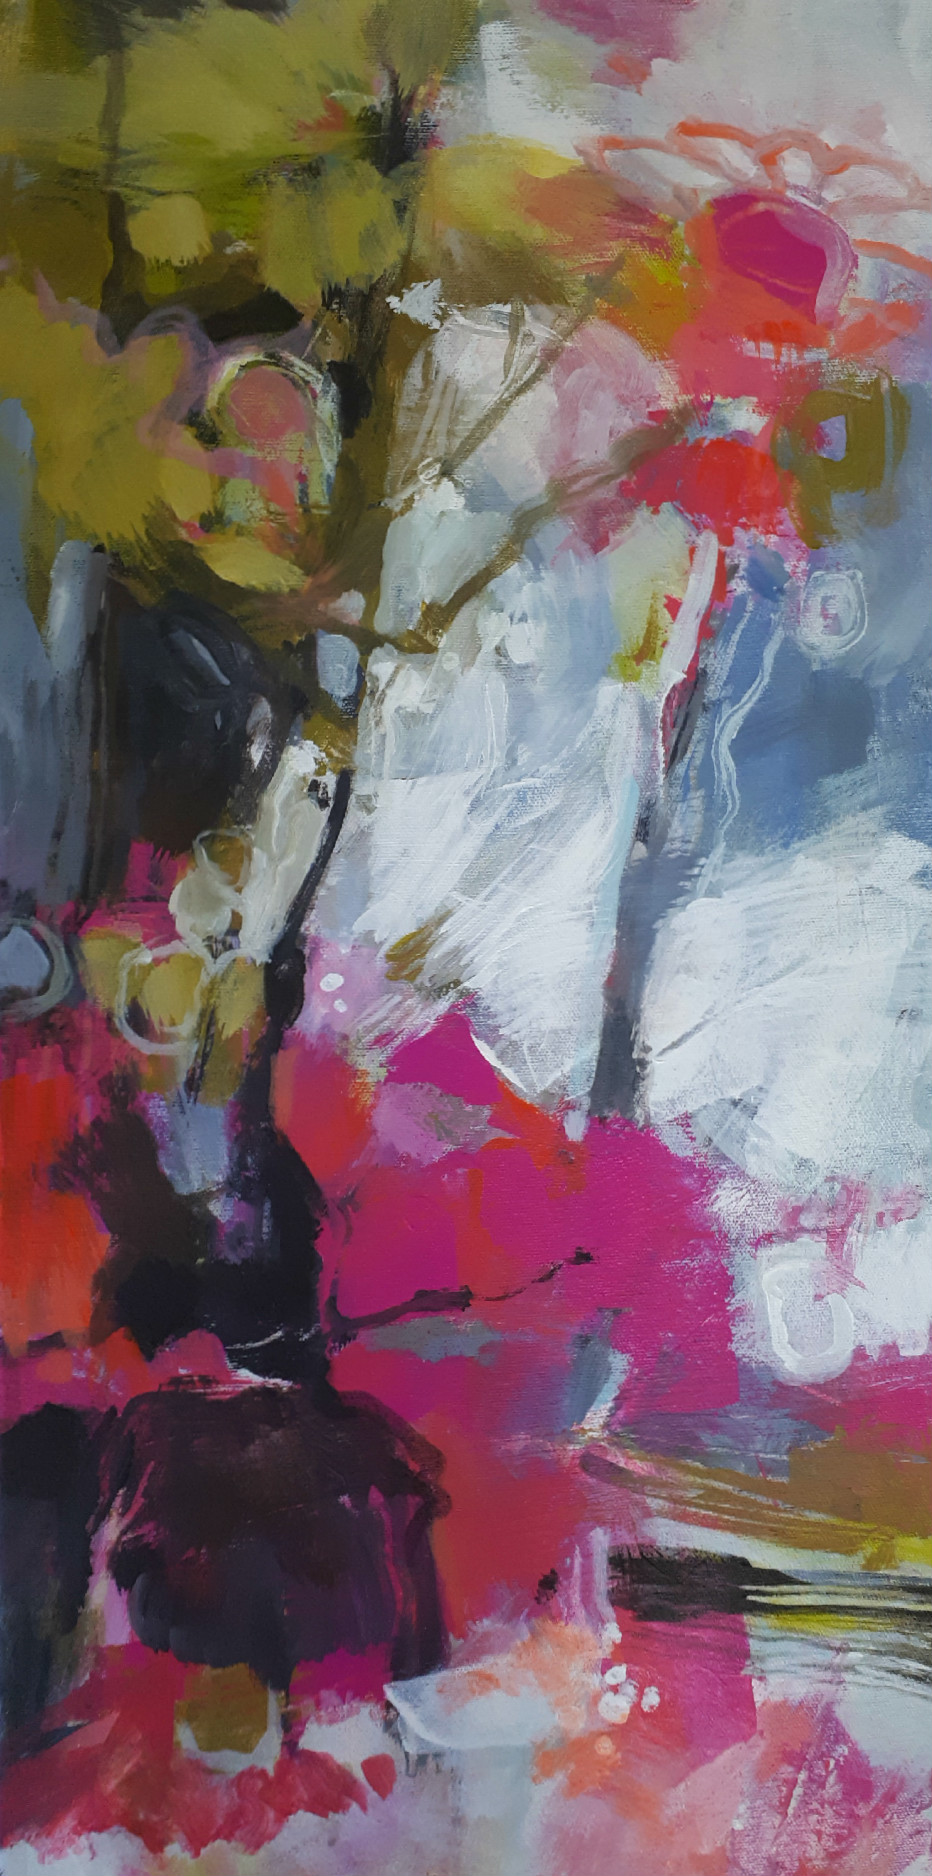 Joy!, acrylic flower painting by Becky Holuk | Effusion Art Gallery + Glass Studio, Invermere BC